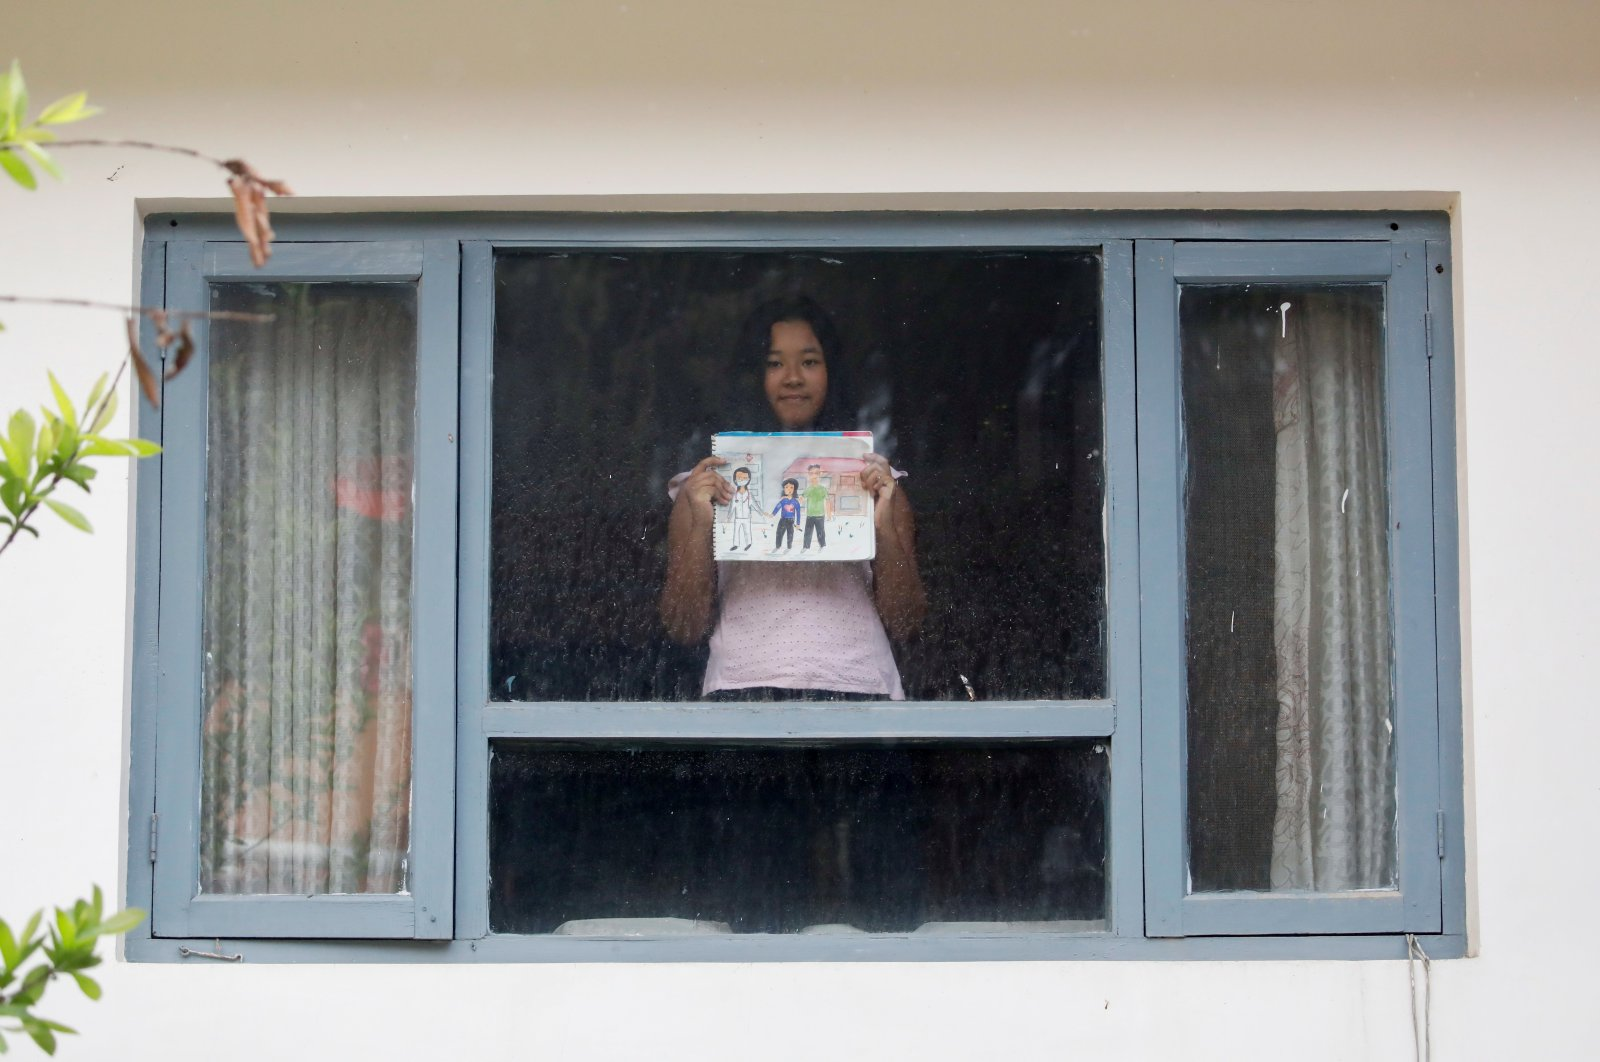 A girl poses for a photograph while holding a picture that she drew during the coronavirus outbreak, Kathmandu, Nepal, April 16, 2020. (REUTERS Photo)